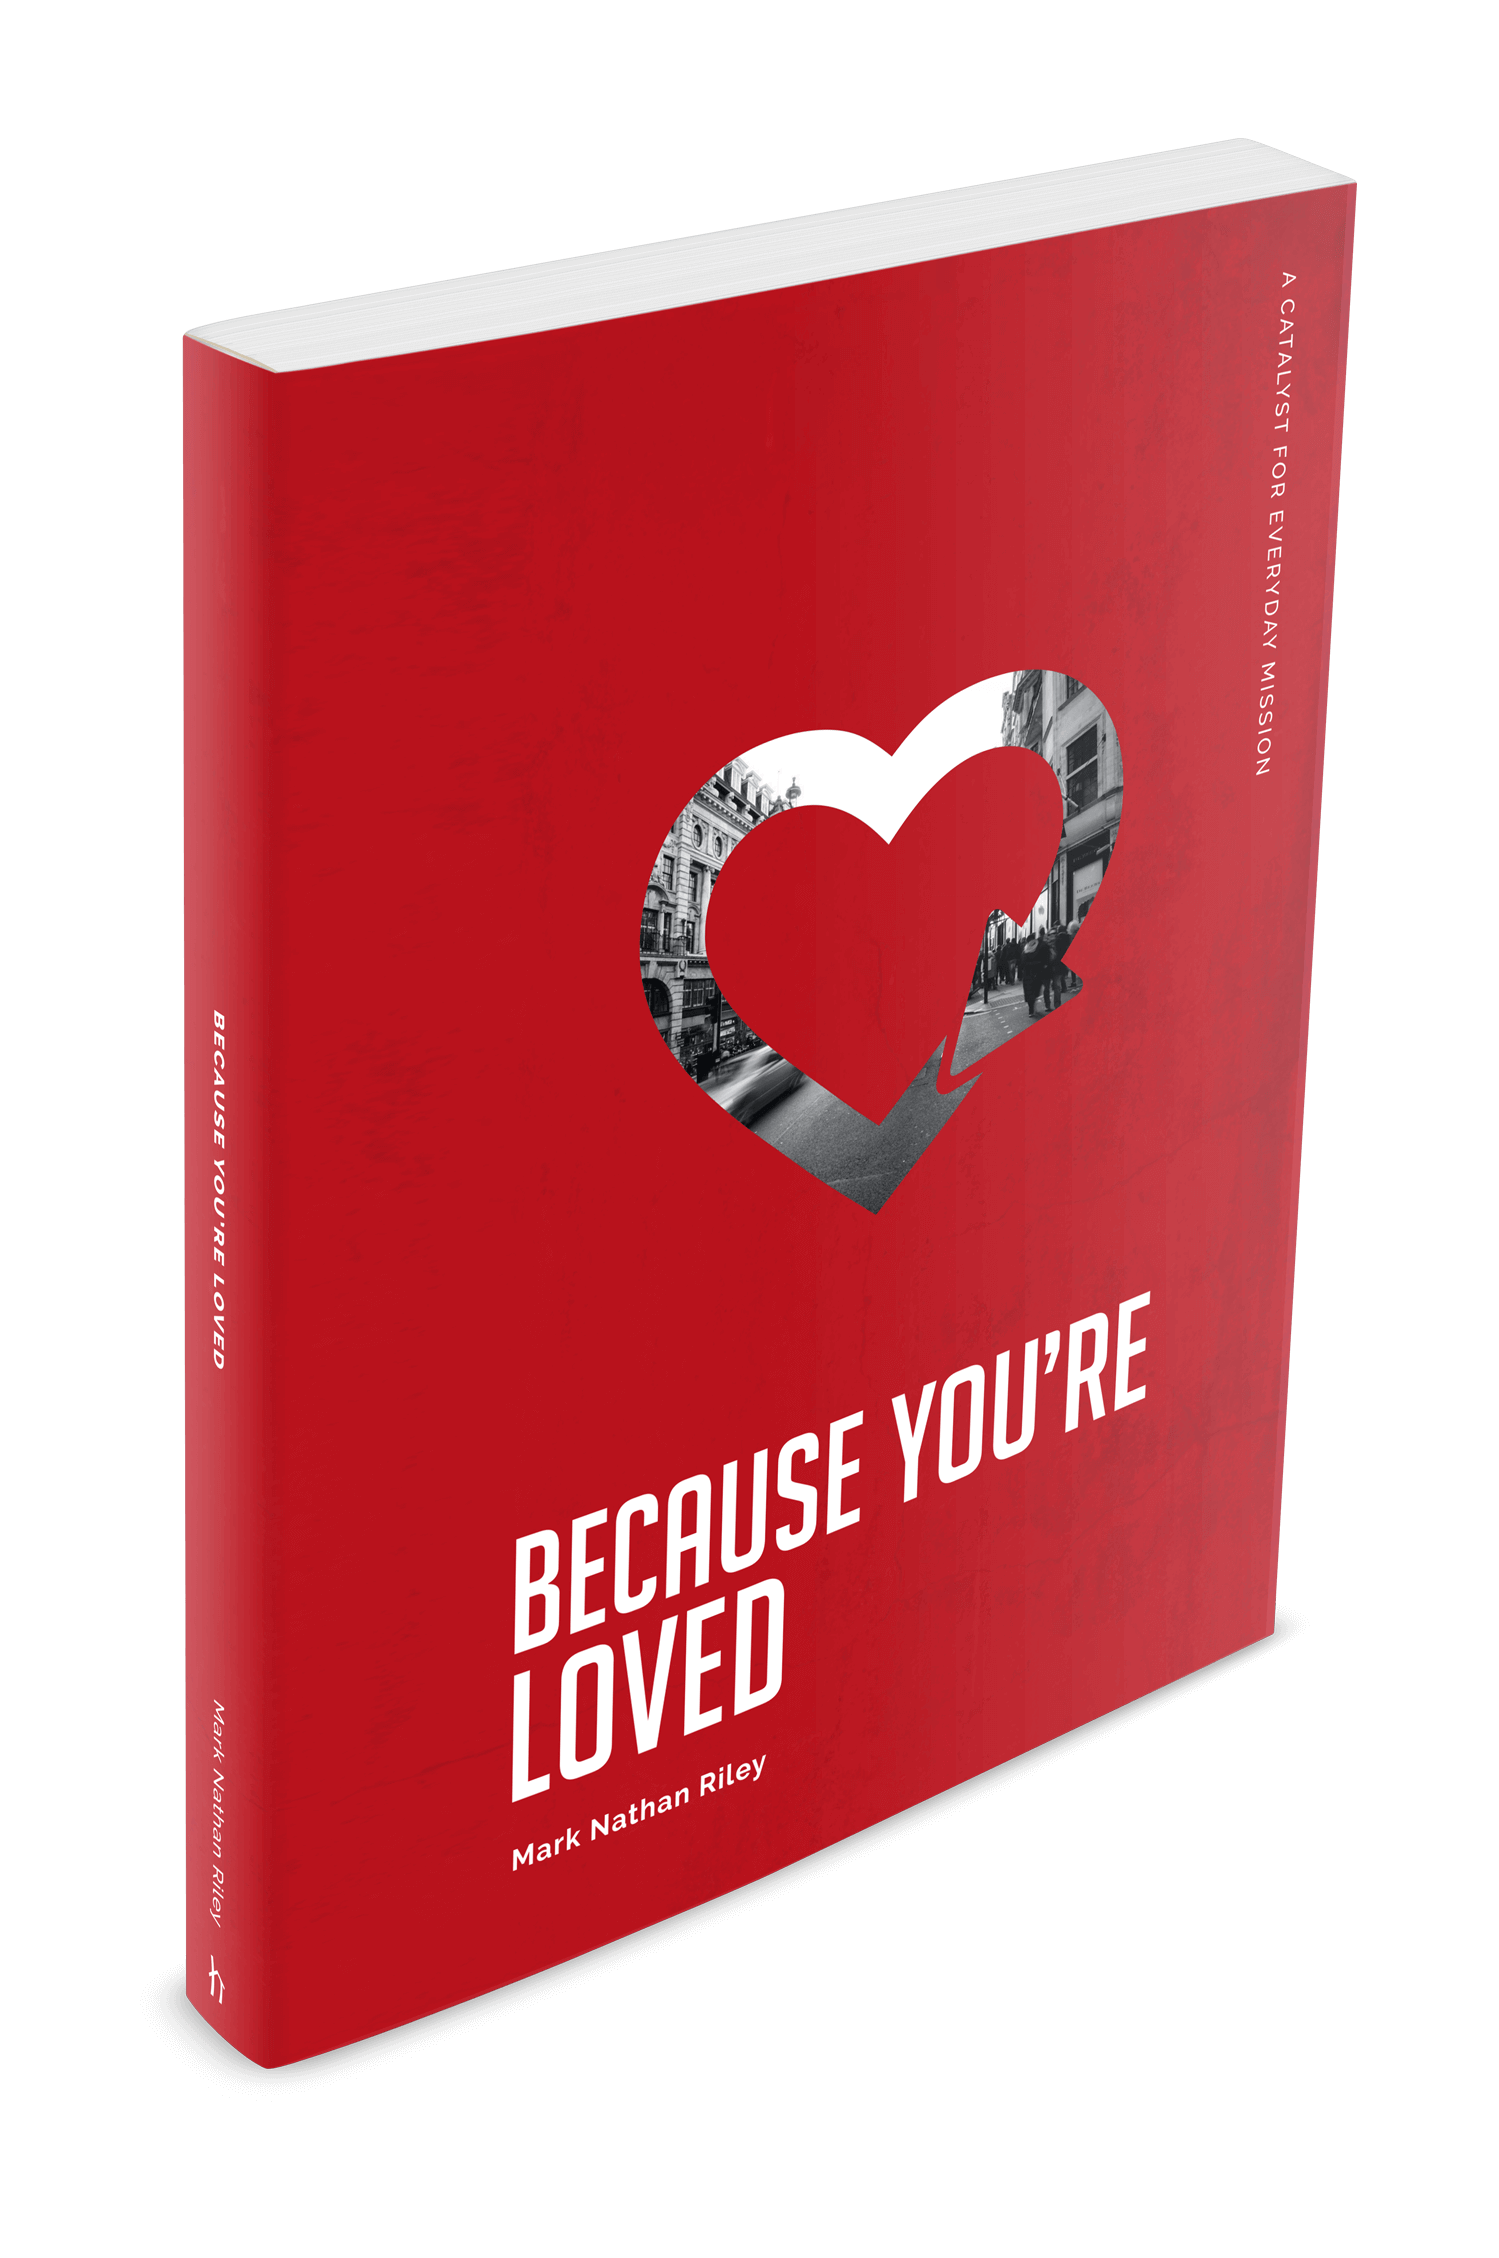 Because you're loved book